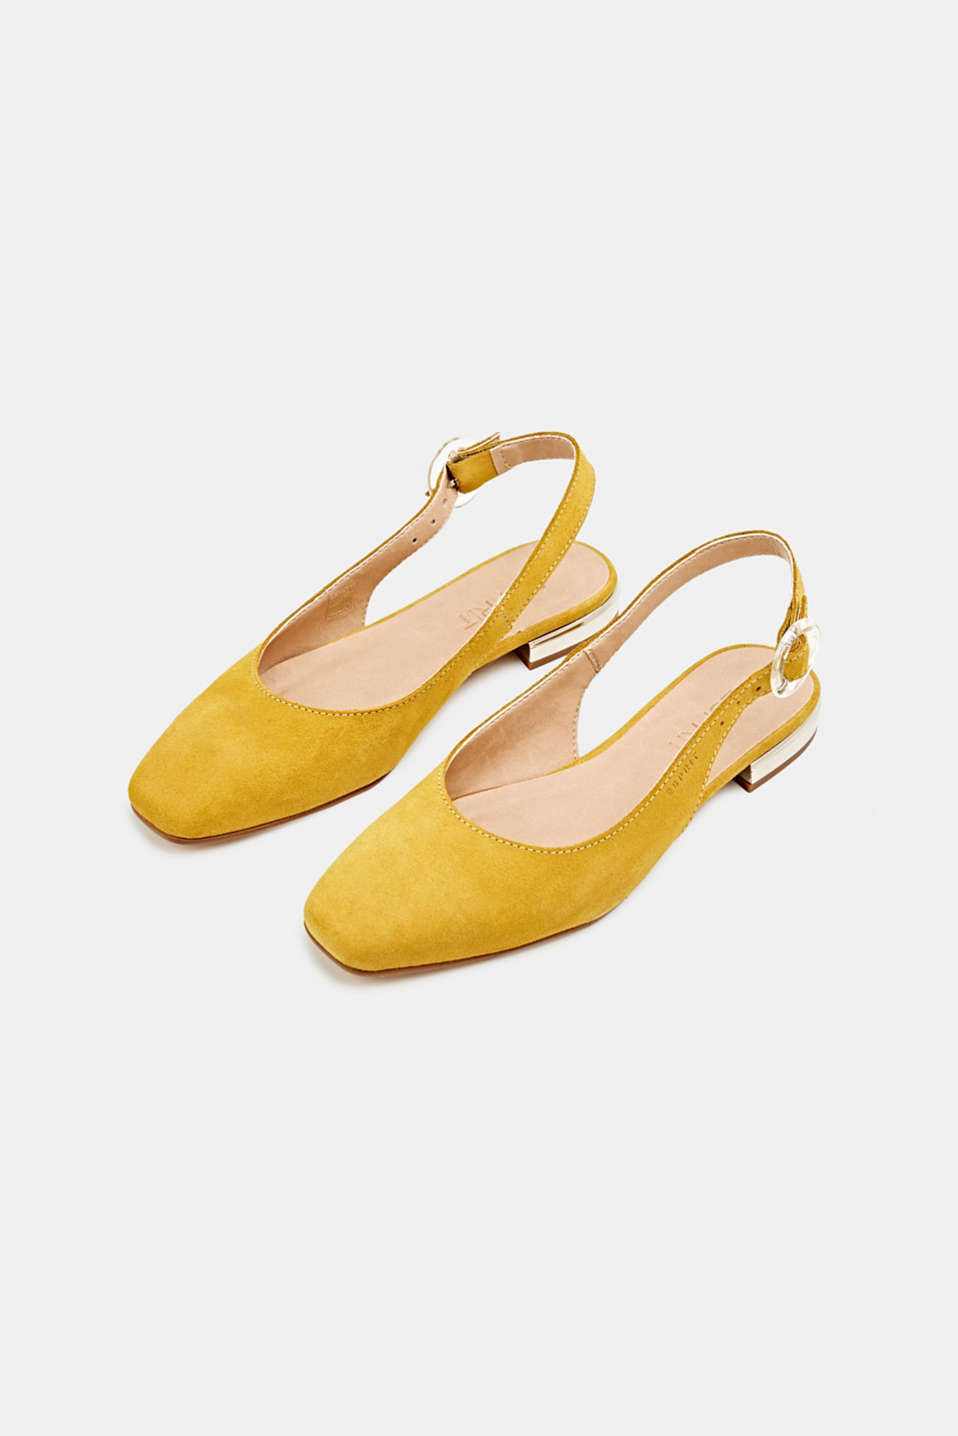 Sling back suede ballerinas, YELLOW, detail image number 1